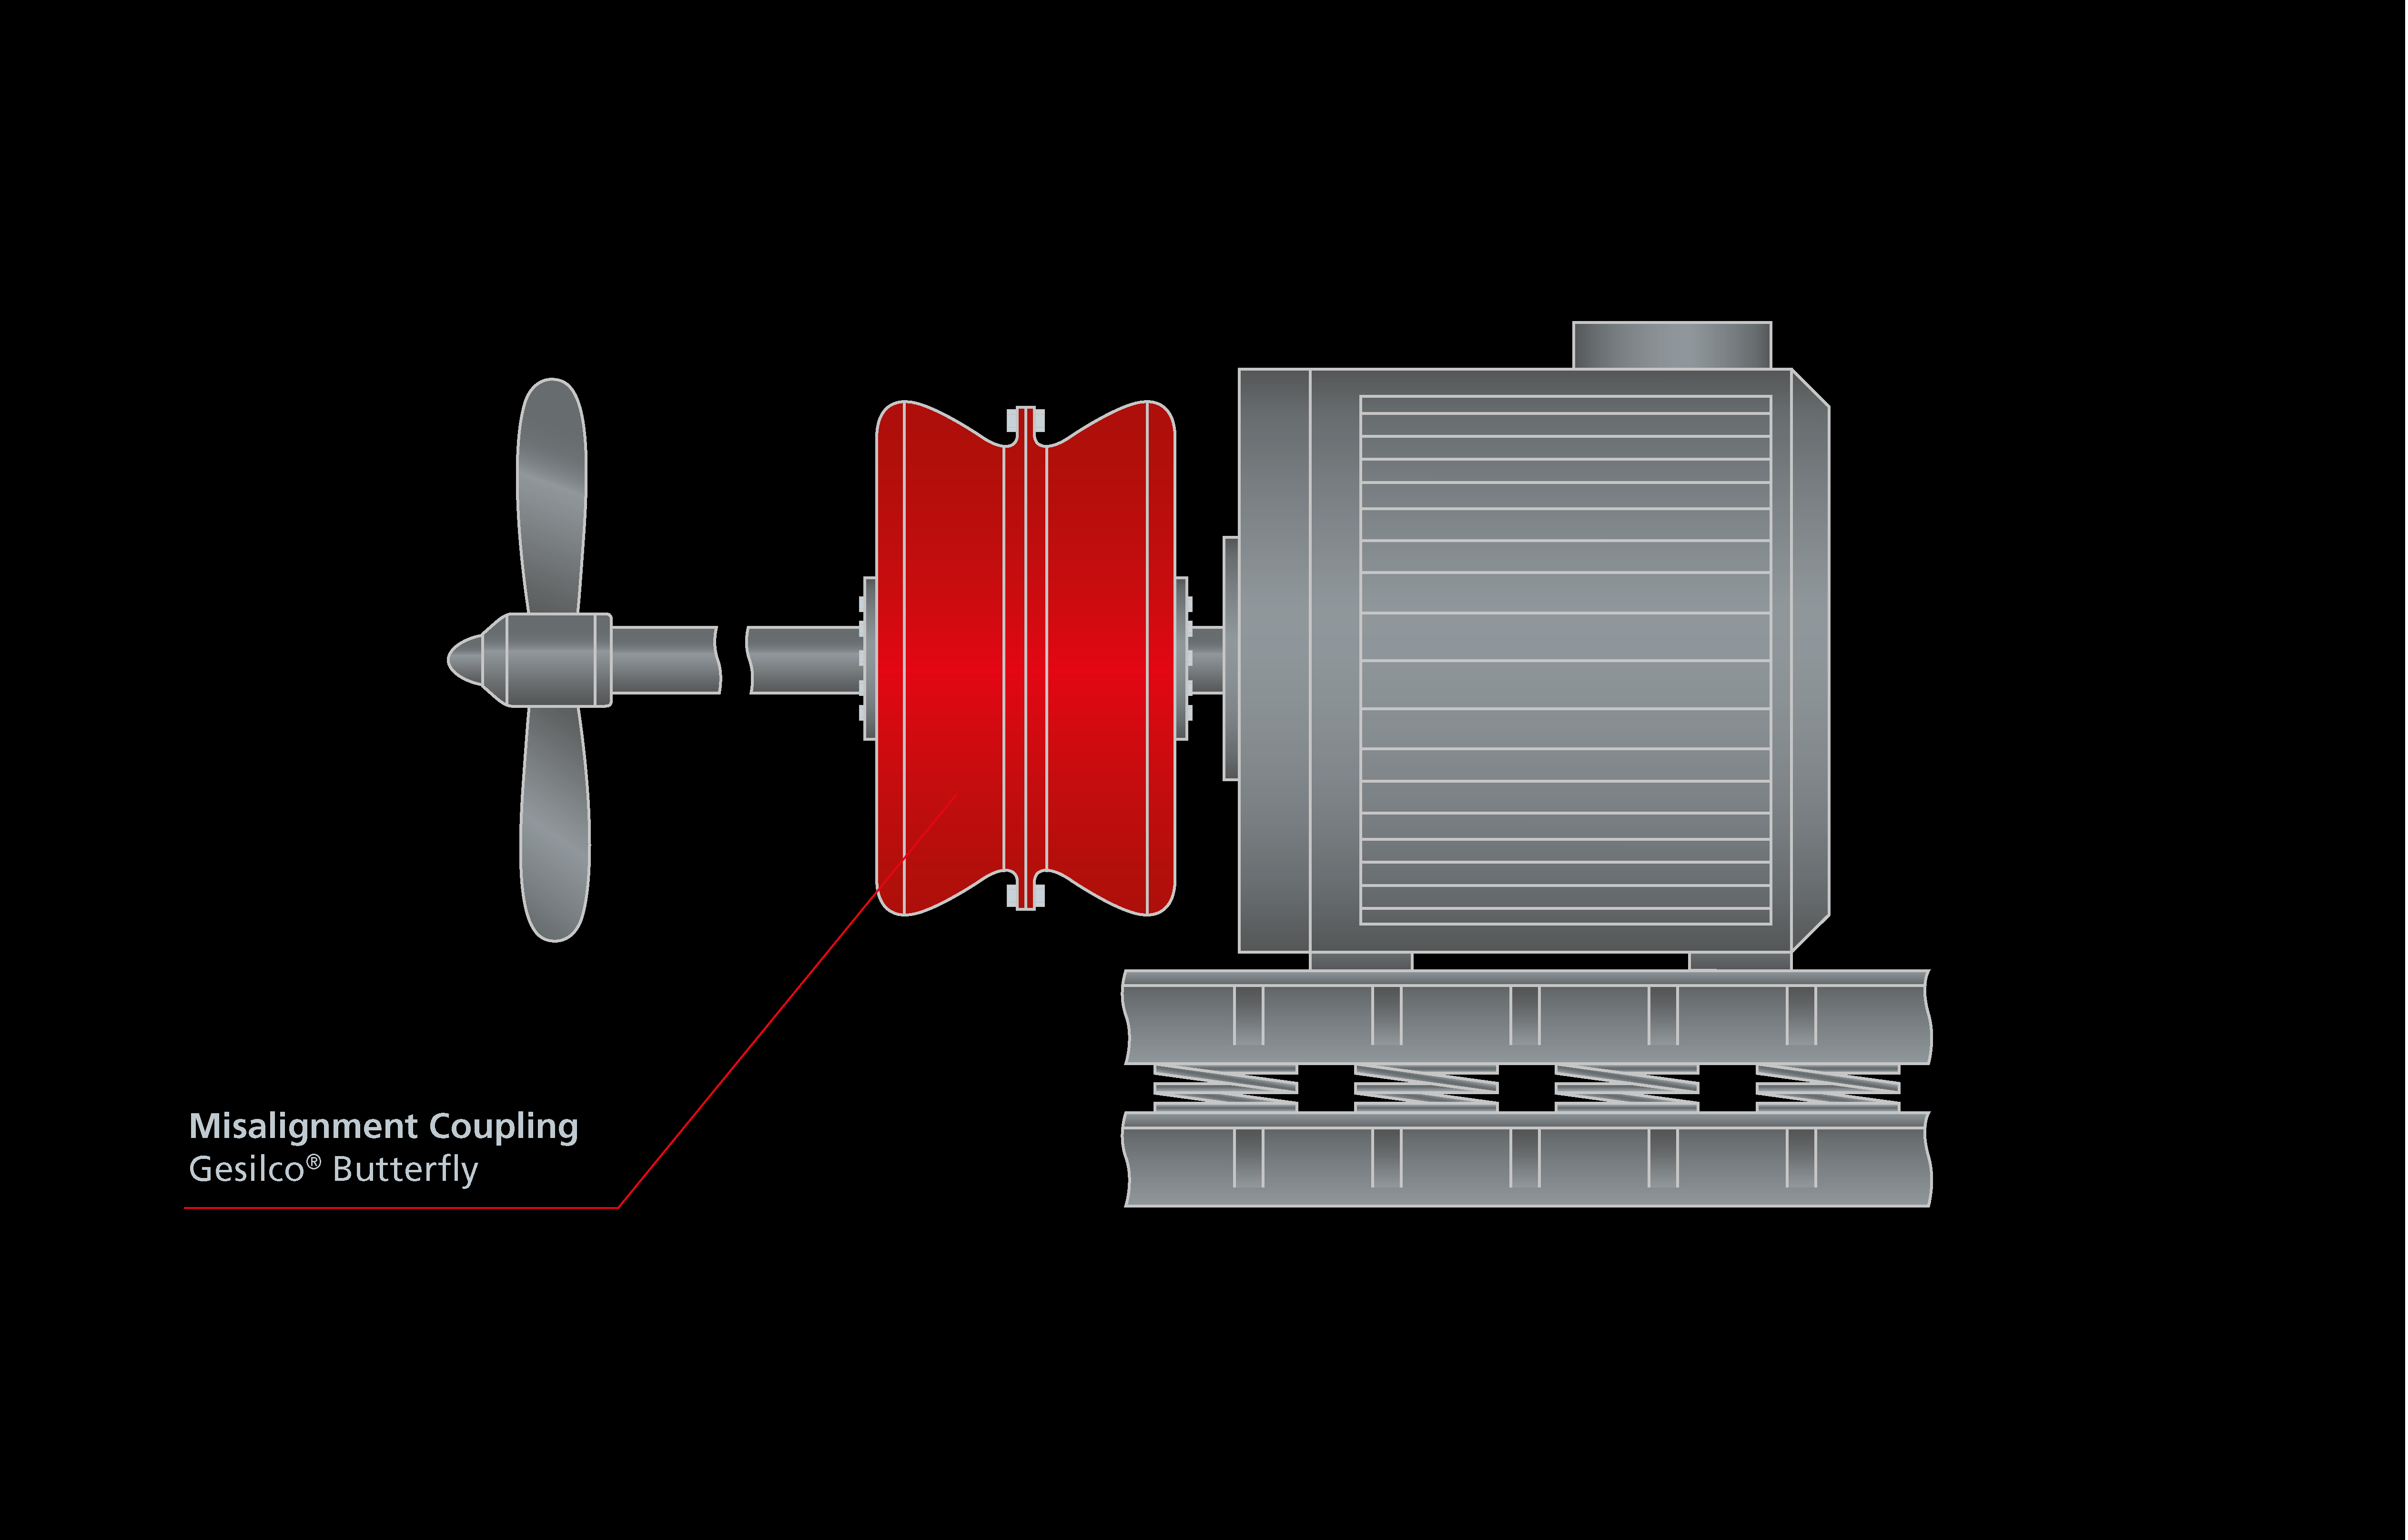 4 Elastically Mounted Electric Motor With A Direct Driven Propeller System